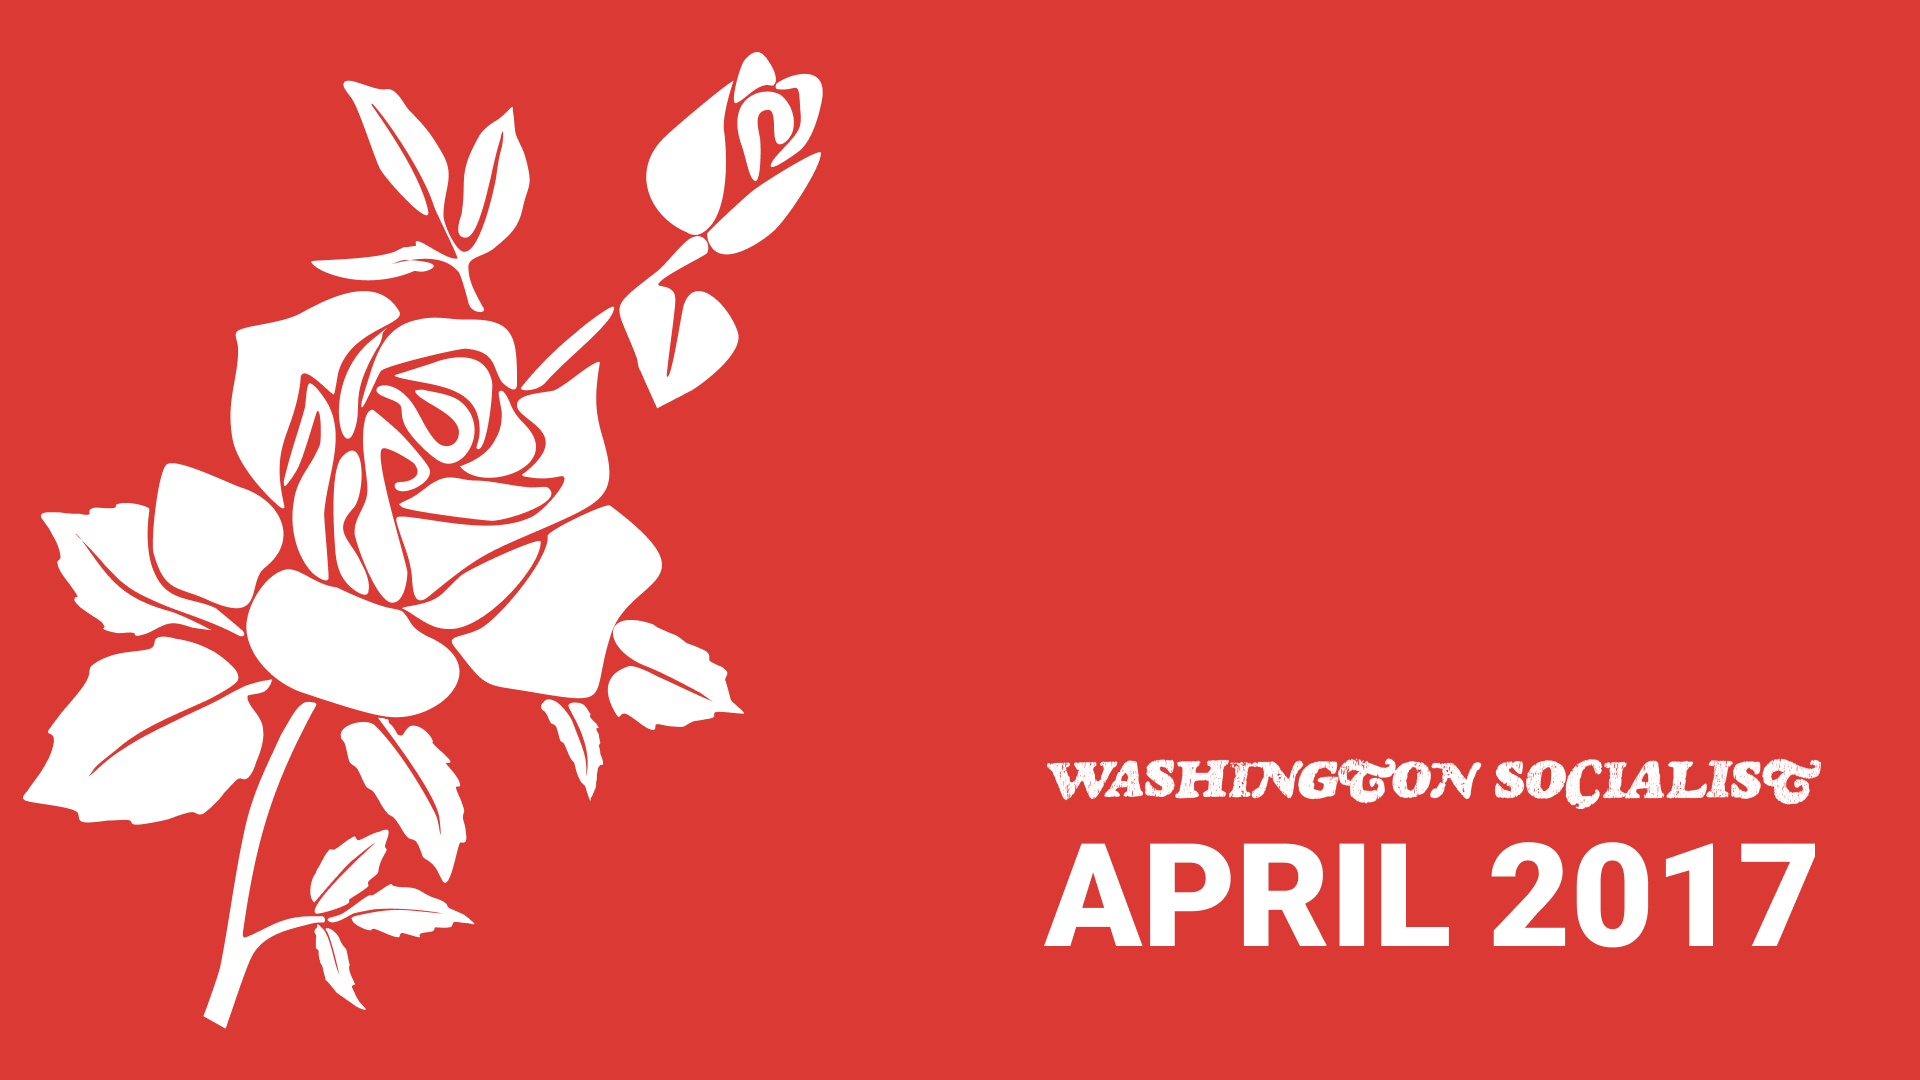 Washington Socialist Cover, April 2017